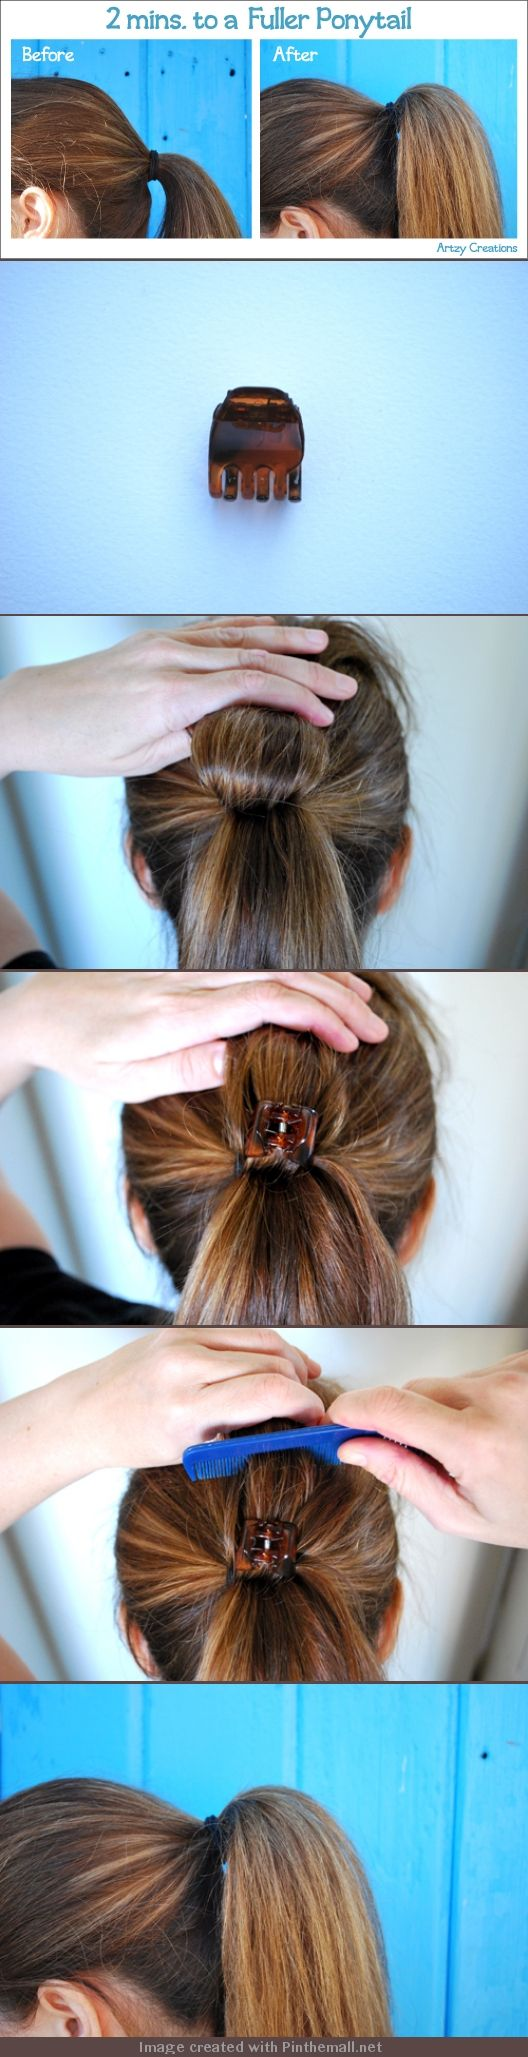 2mins For A Fuller Ponytail. 1) Divide ponytail in half, flip hair back.  Hold this section on top of your head 2) Put clip in hair 3)Tease top section of hair.  Don't over do it as you want it to be a natural look. Spray your hair with a good aerosol hairspray.